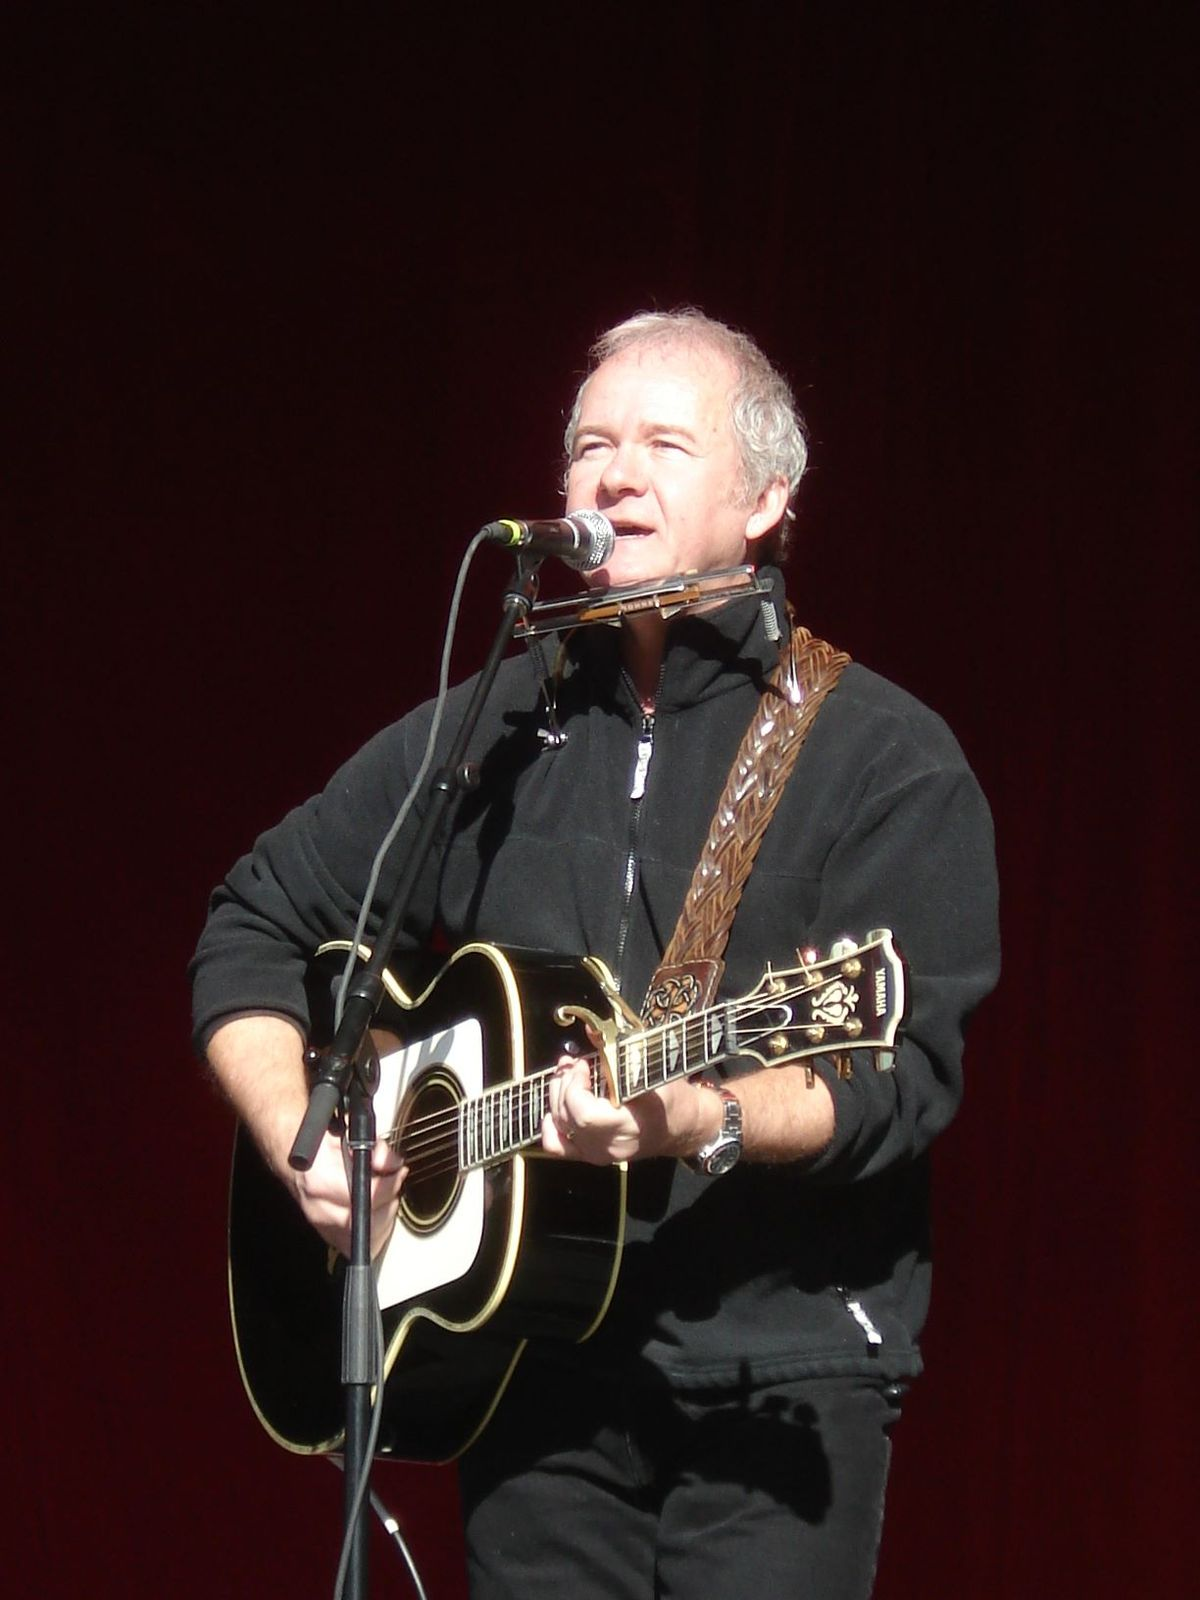 Murray McLauchlan - Wikipedia